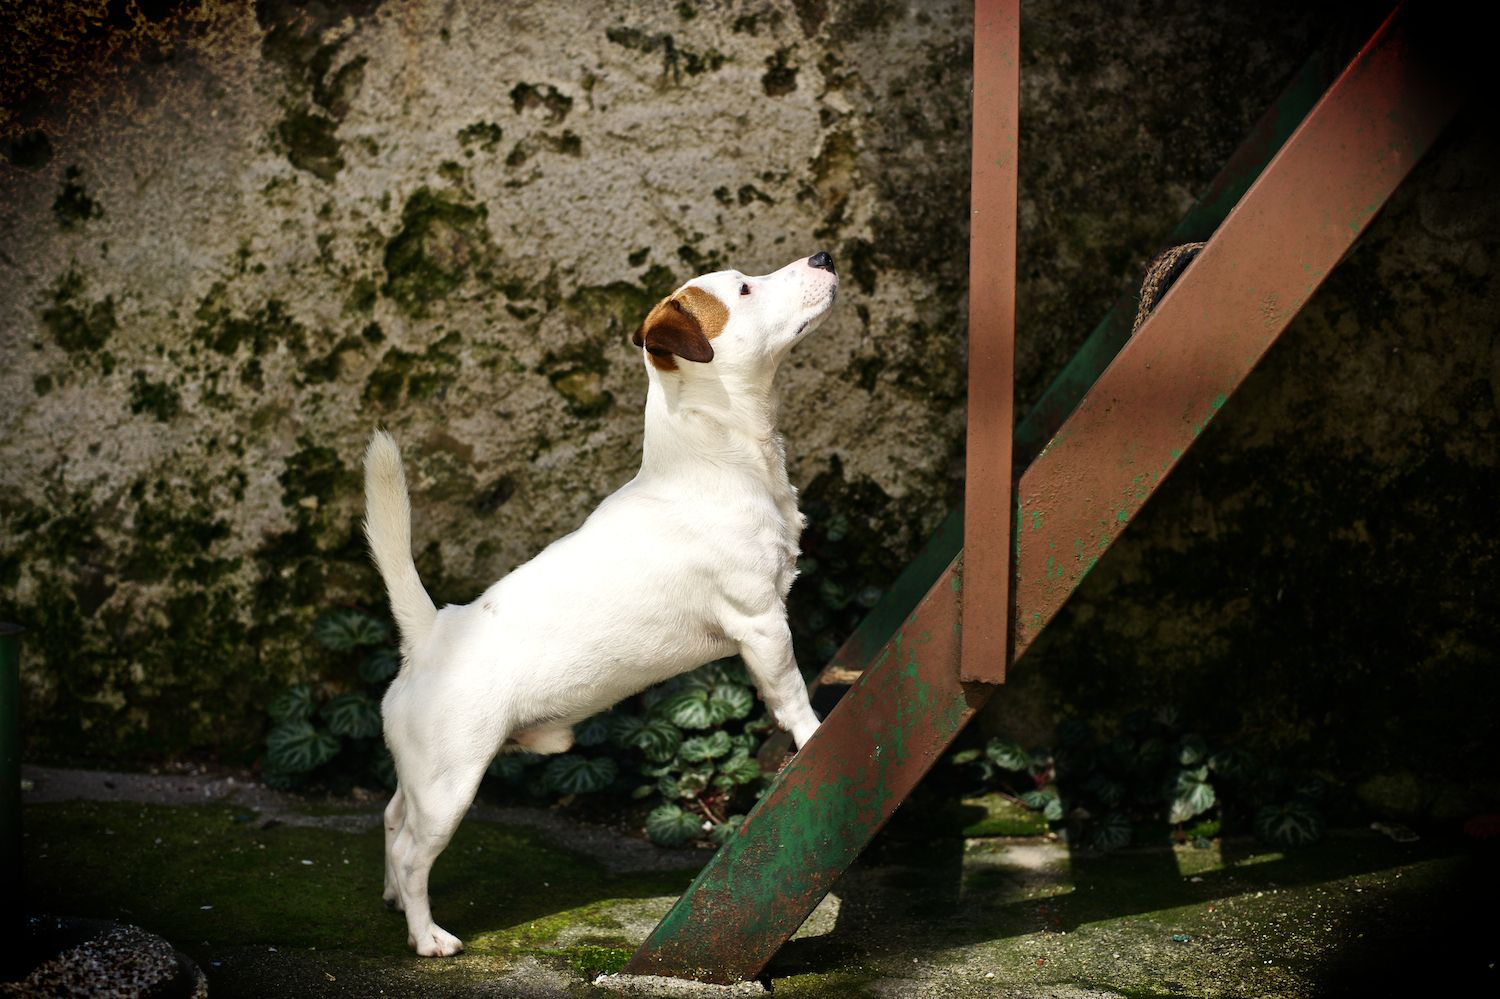 My Dog Mr Spock 2 Years Old Jack Russell Terrier Jack Russell Jack Russell Dogs Dog Friends